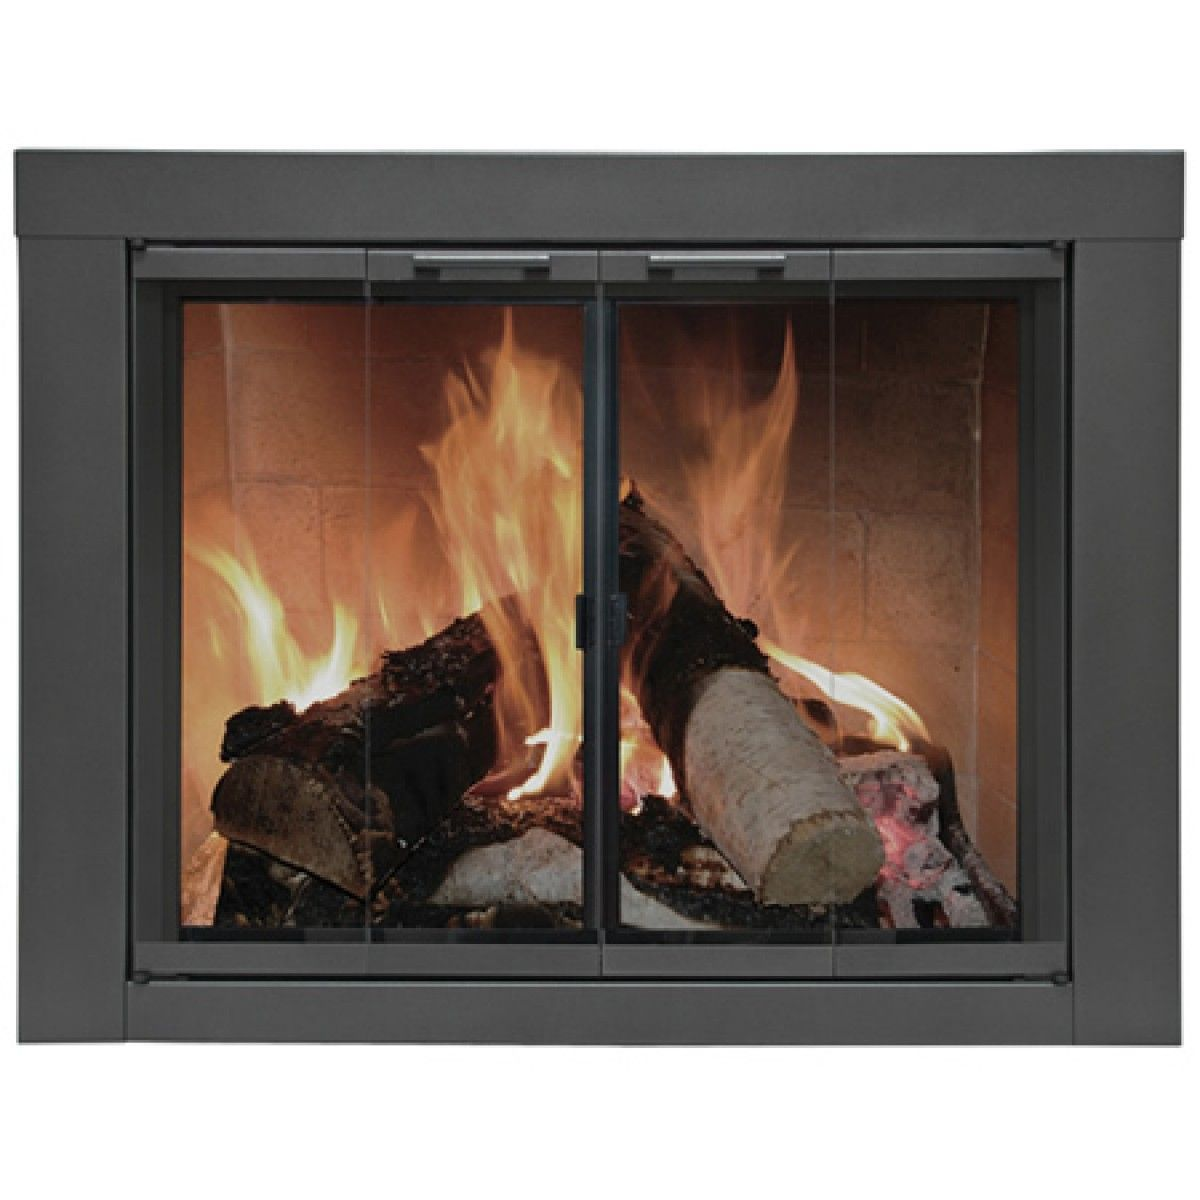 Best Pics Low Fireplace Hearth Tips Hearths Have Already Been In The Middle Of Our Homes For Tens Of Thousands Of Years Where Your Fire Fireplace Hearth Pic